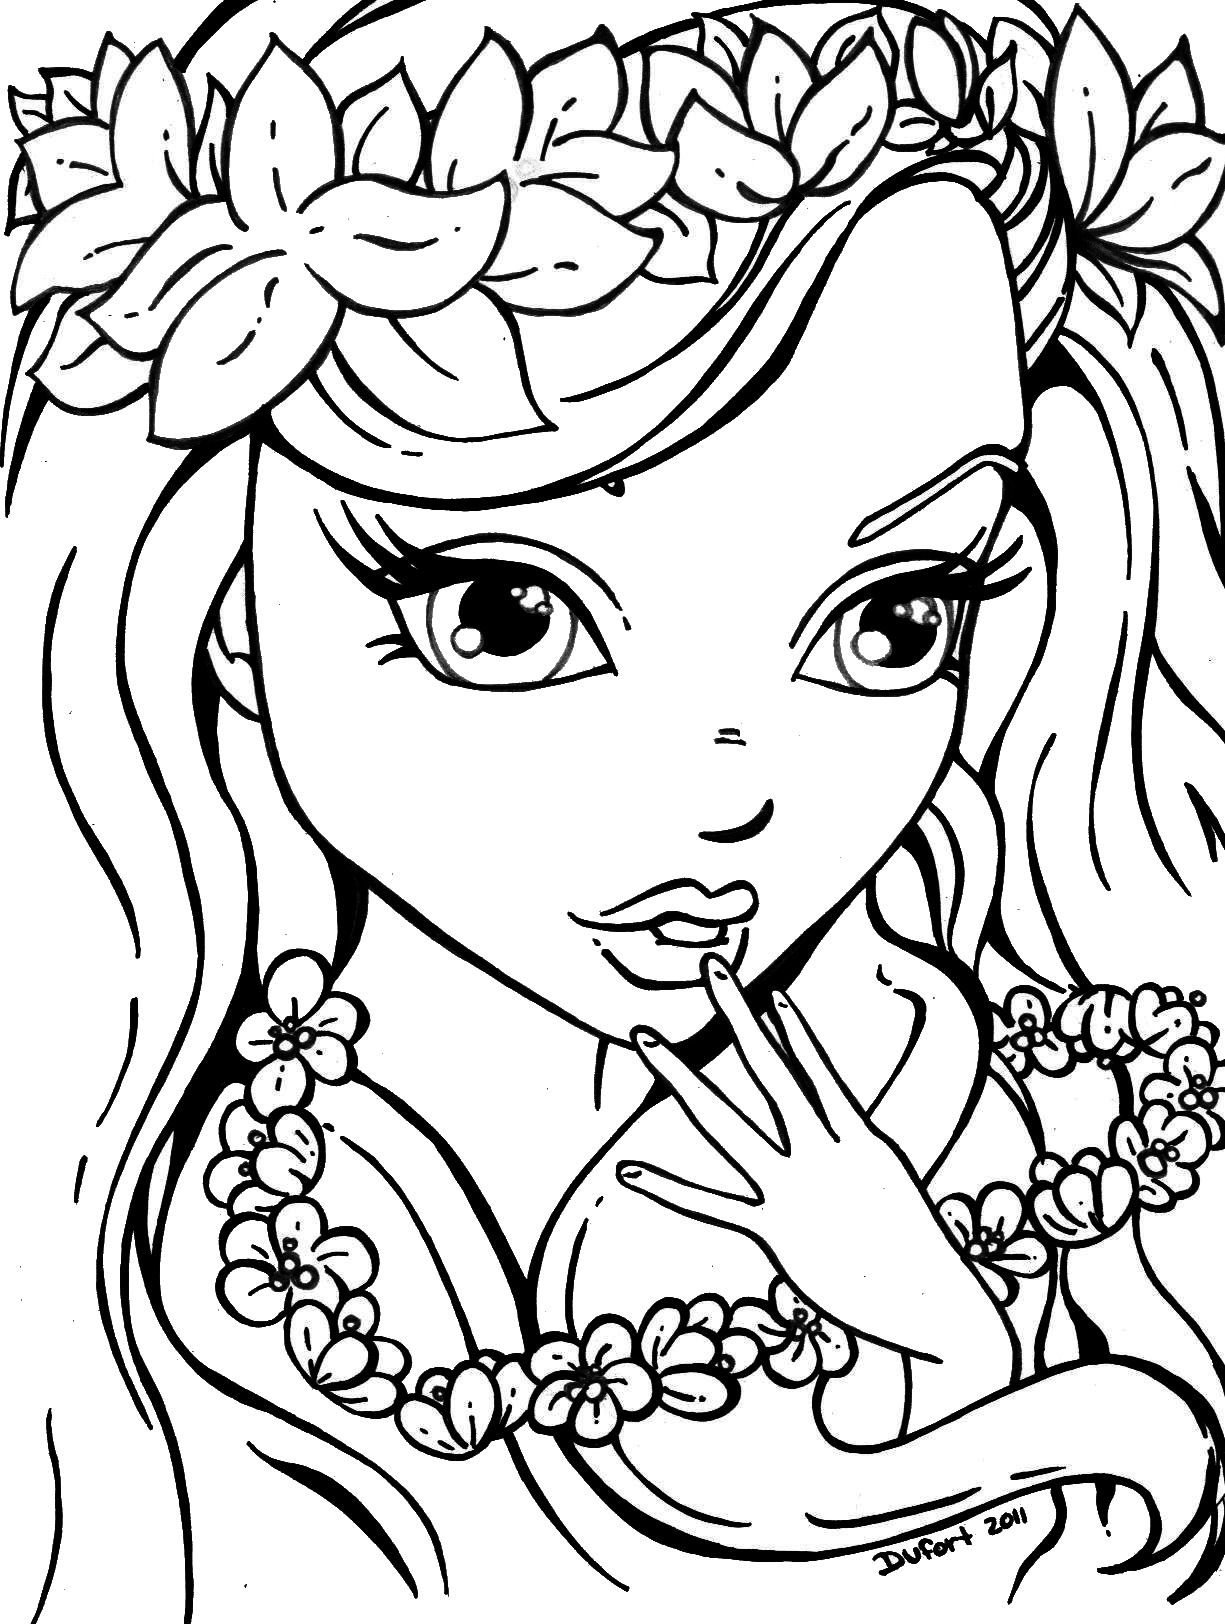 Printable Coloring Pages for Tweens Printable 1h - To print for your project